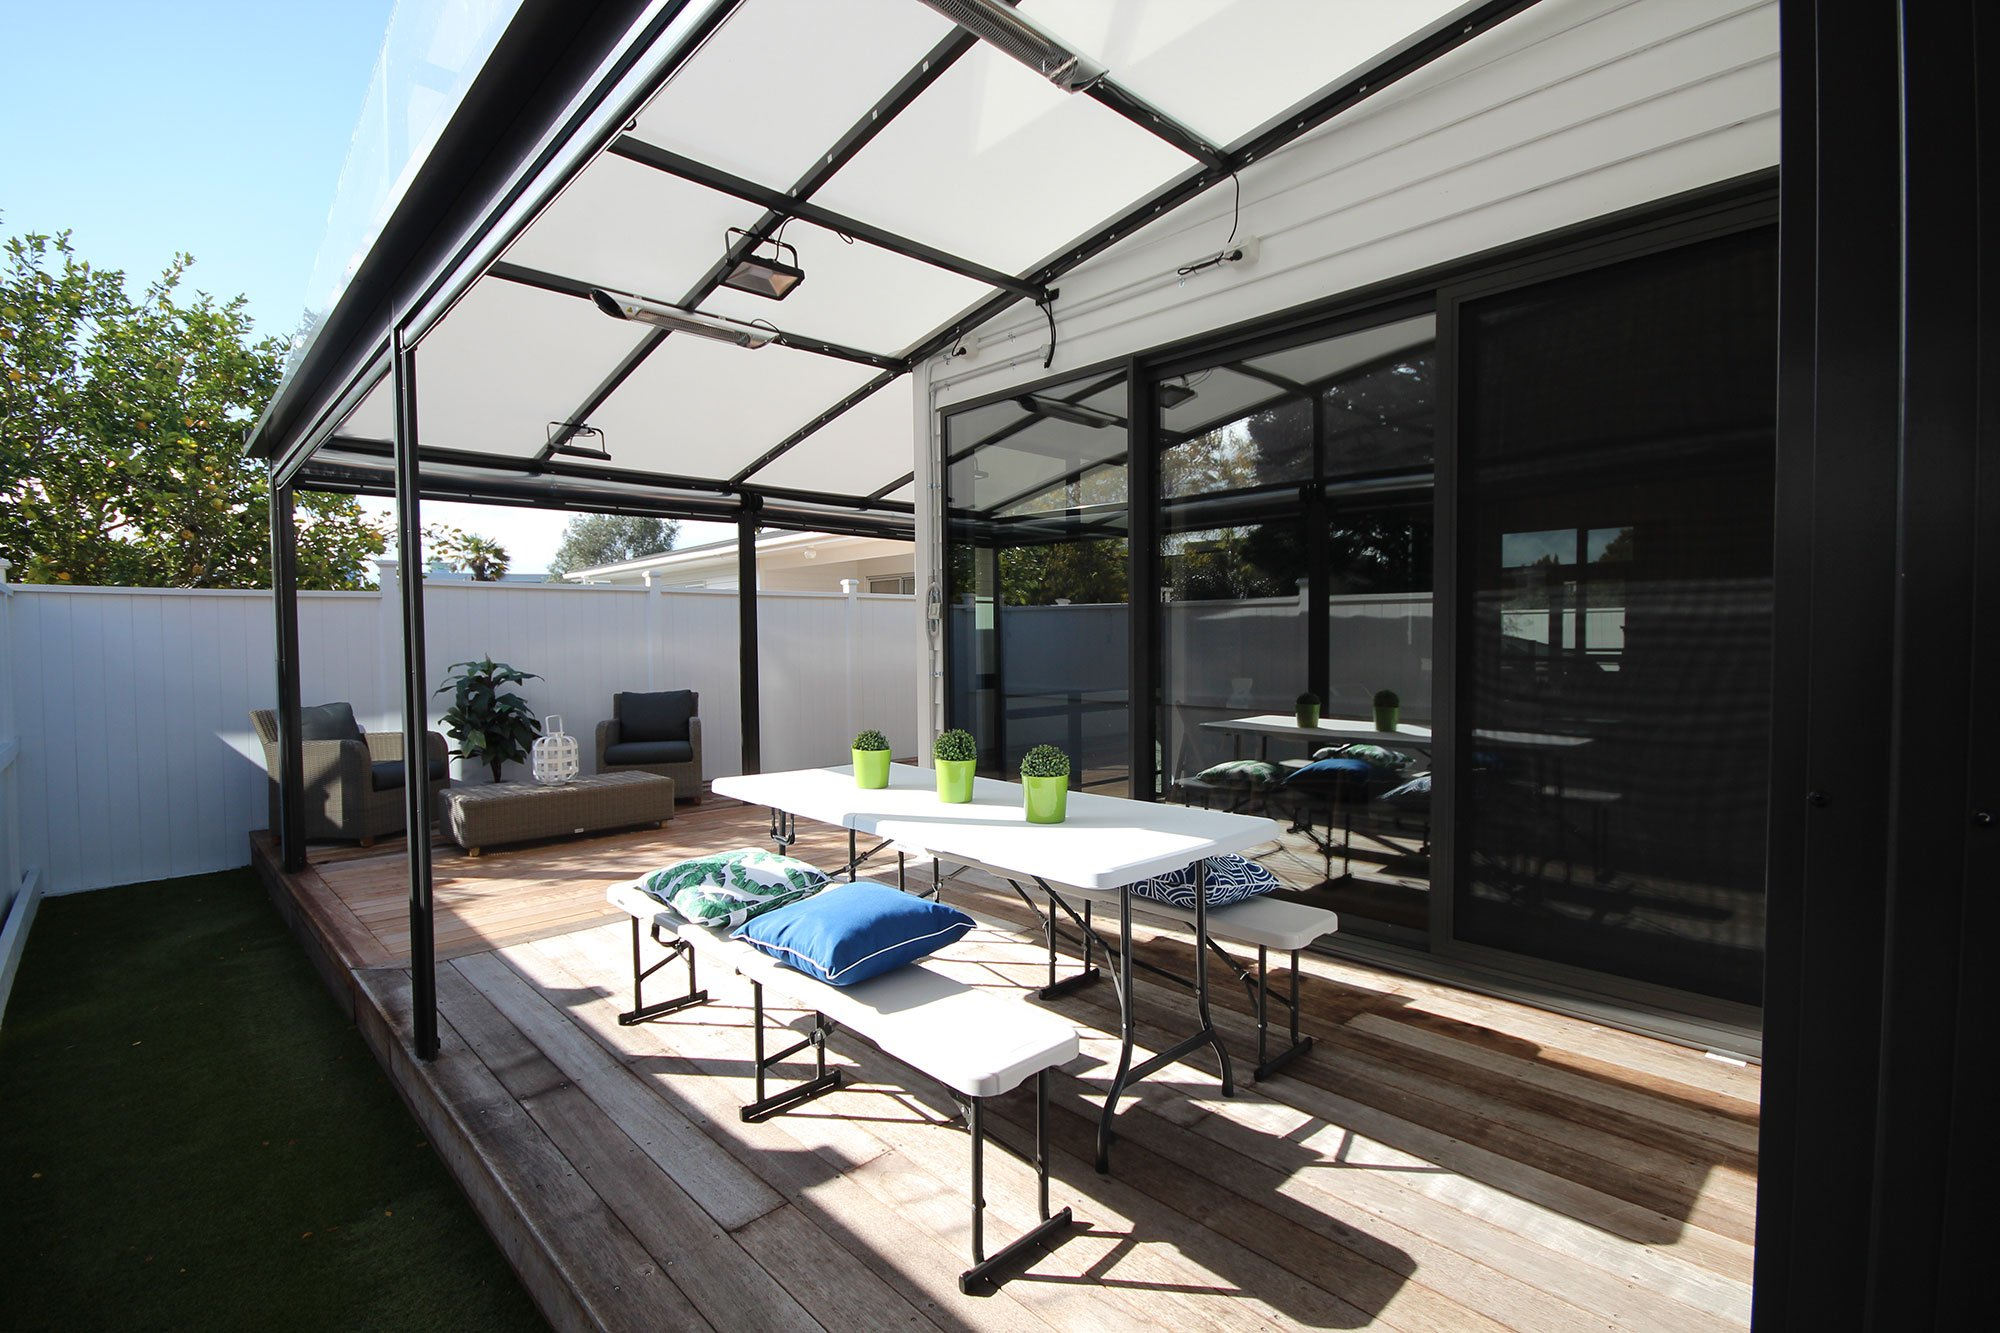 The Power of PVC: Choosing Your Awning Fabric